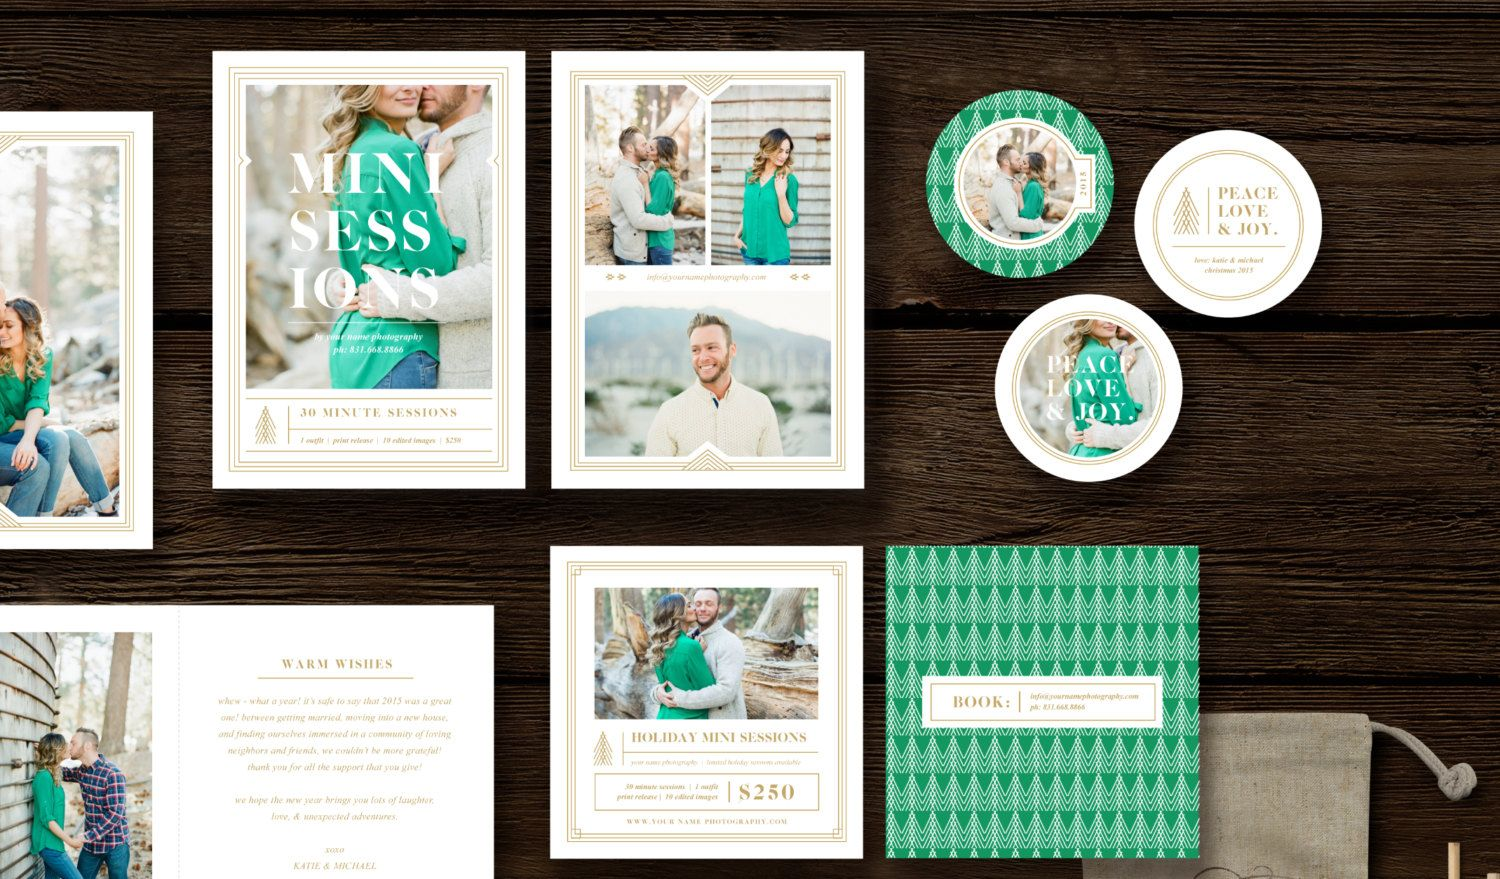 Christmas Card Templates For Professional Photographers Customizable Photoshop Holiday Card Template Photographer Marketing Template Christmas Card Template